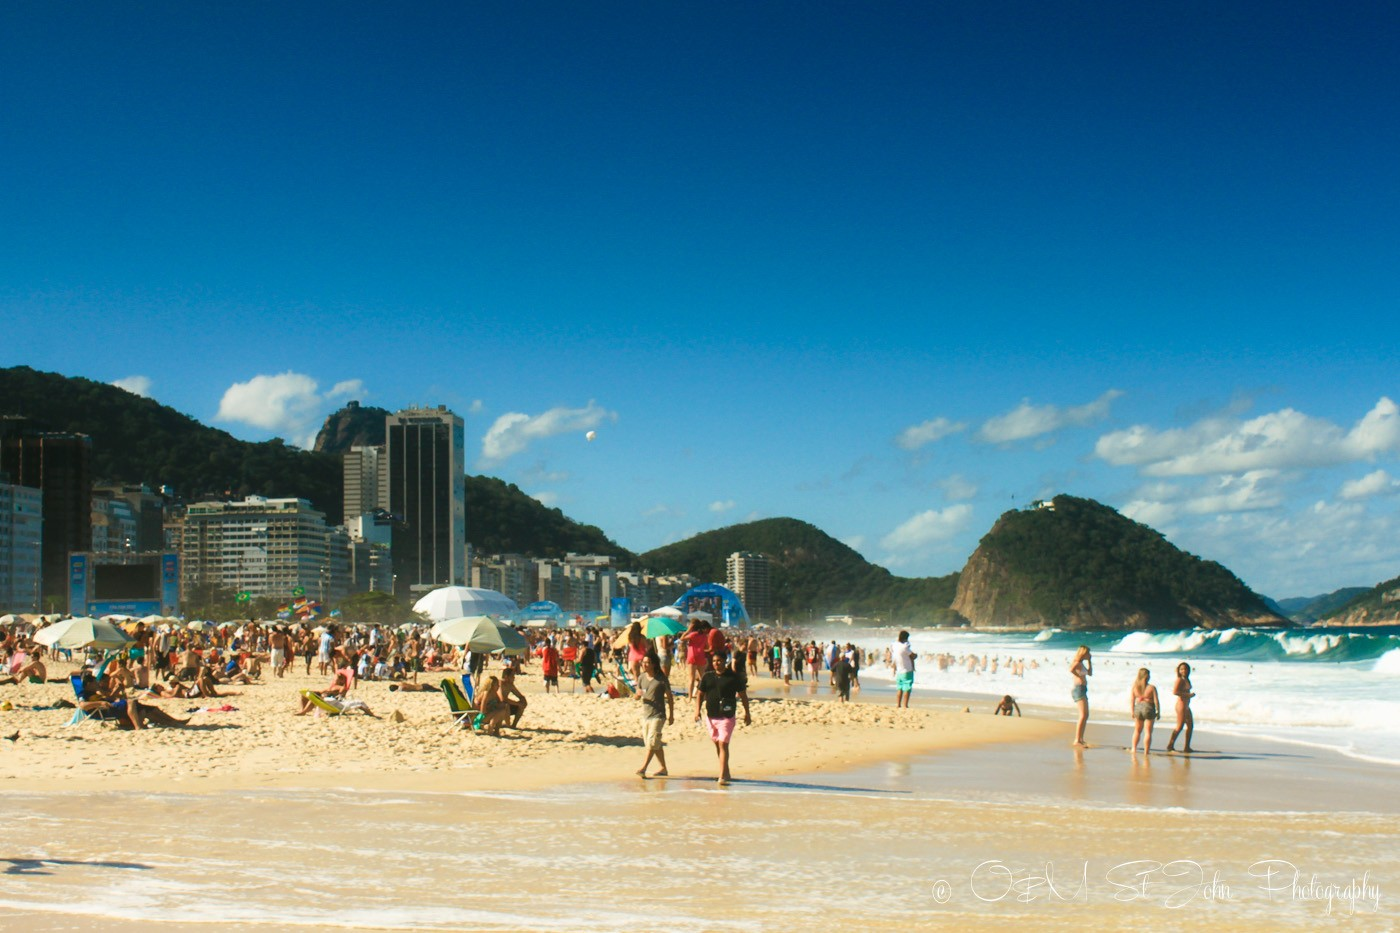 Hike to Christ the Redeemer: You can get a shuttle bus from Copacabana Beach to Christ the Redeemer.